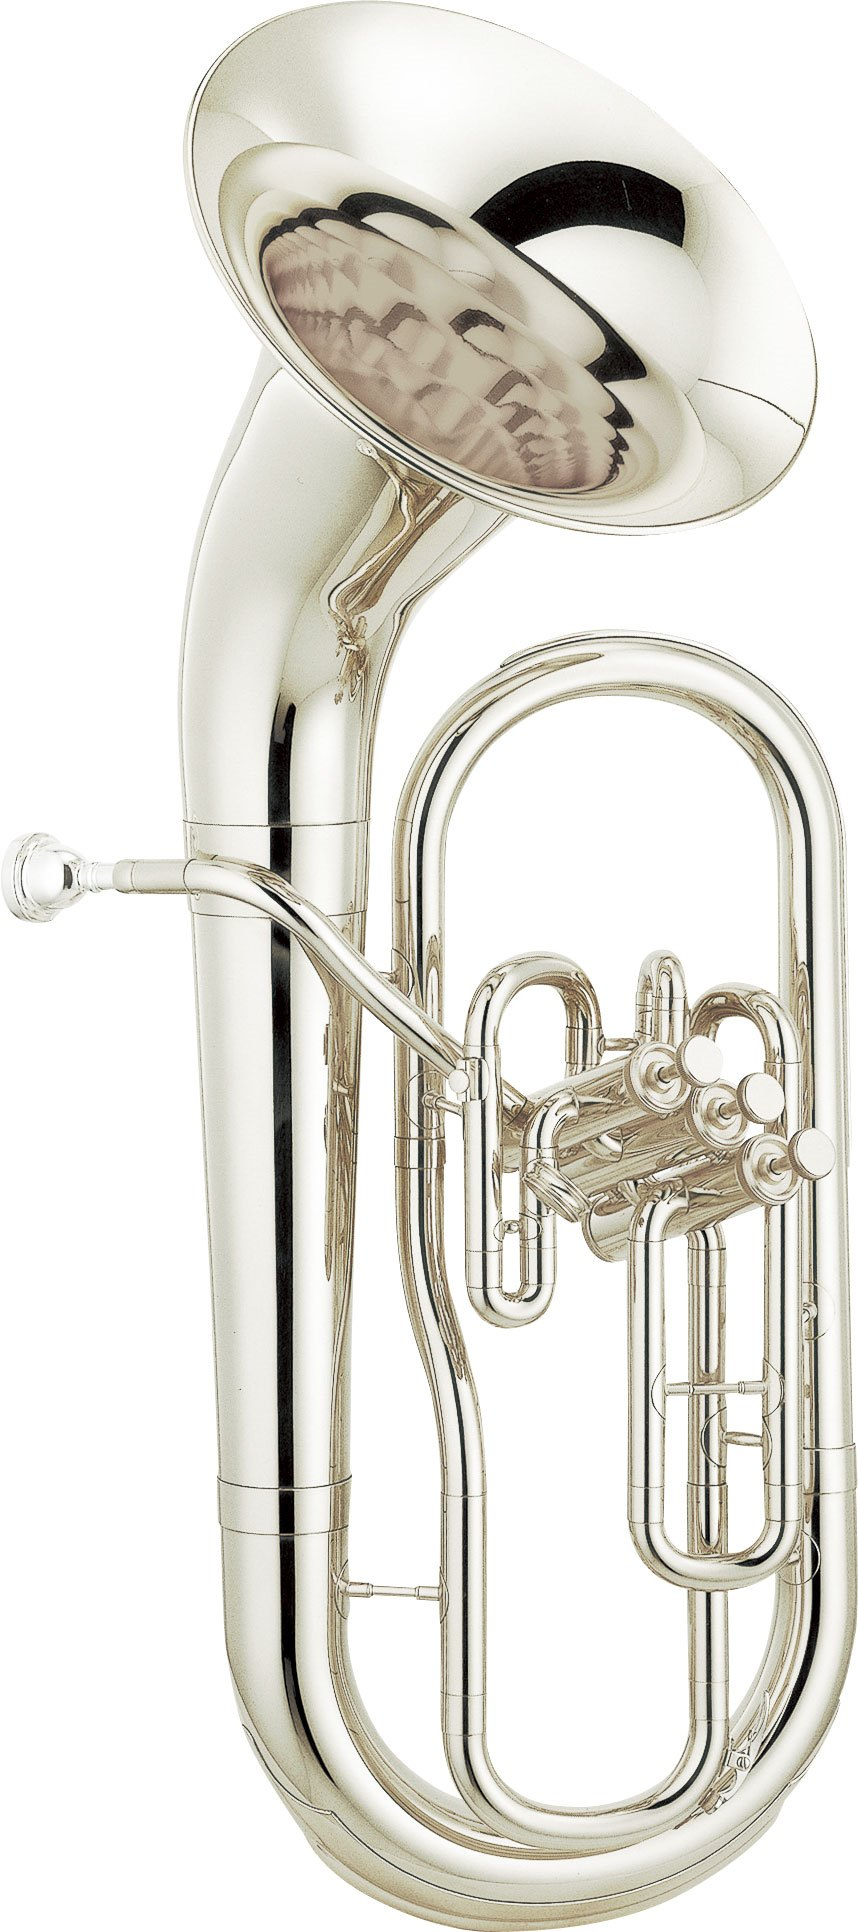 yep 211 overview euphoniums brass woodwinds musical instruments products yamaha. Black Bedroom Furniture Sets. Home Design Ideas